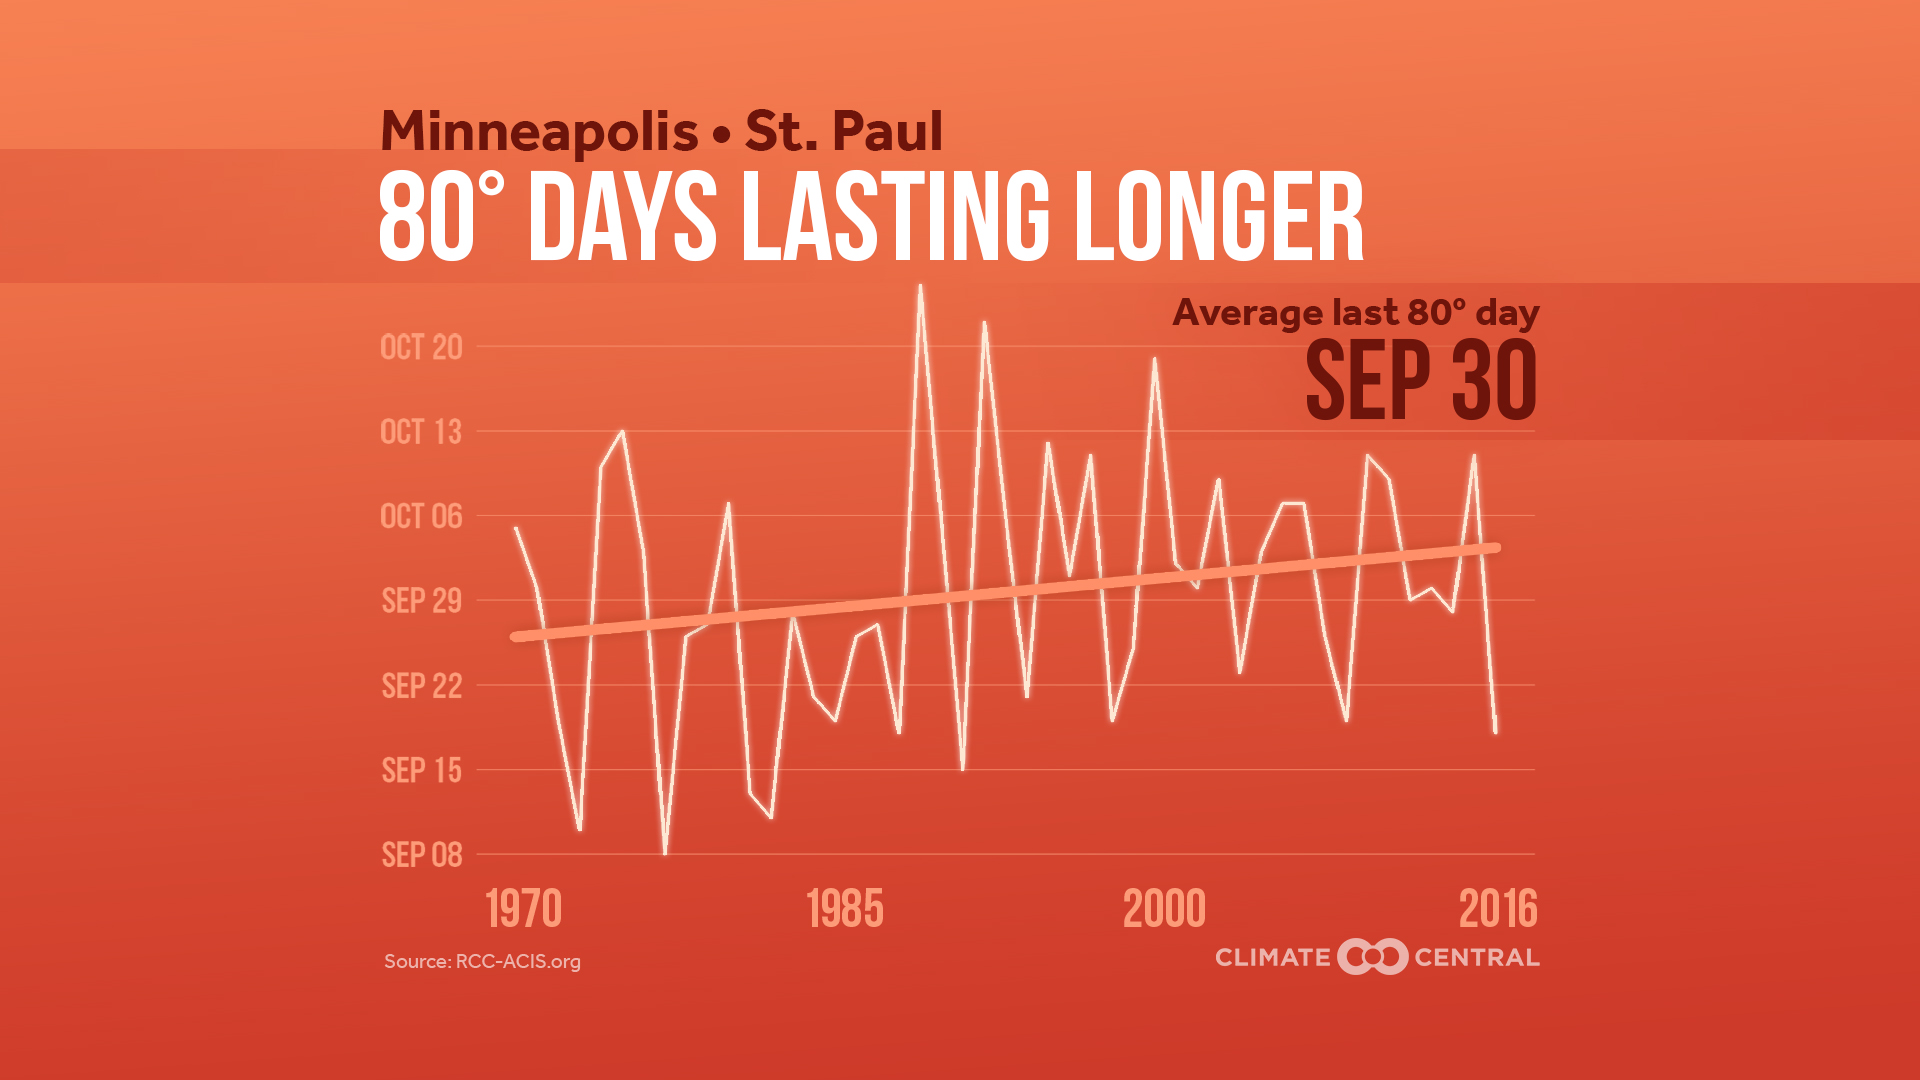 Summer is Lasting Longer Across the U.S.